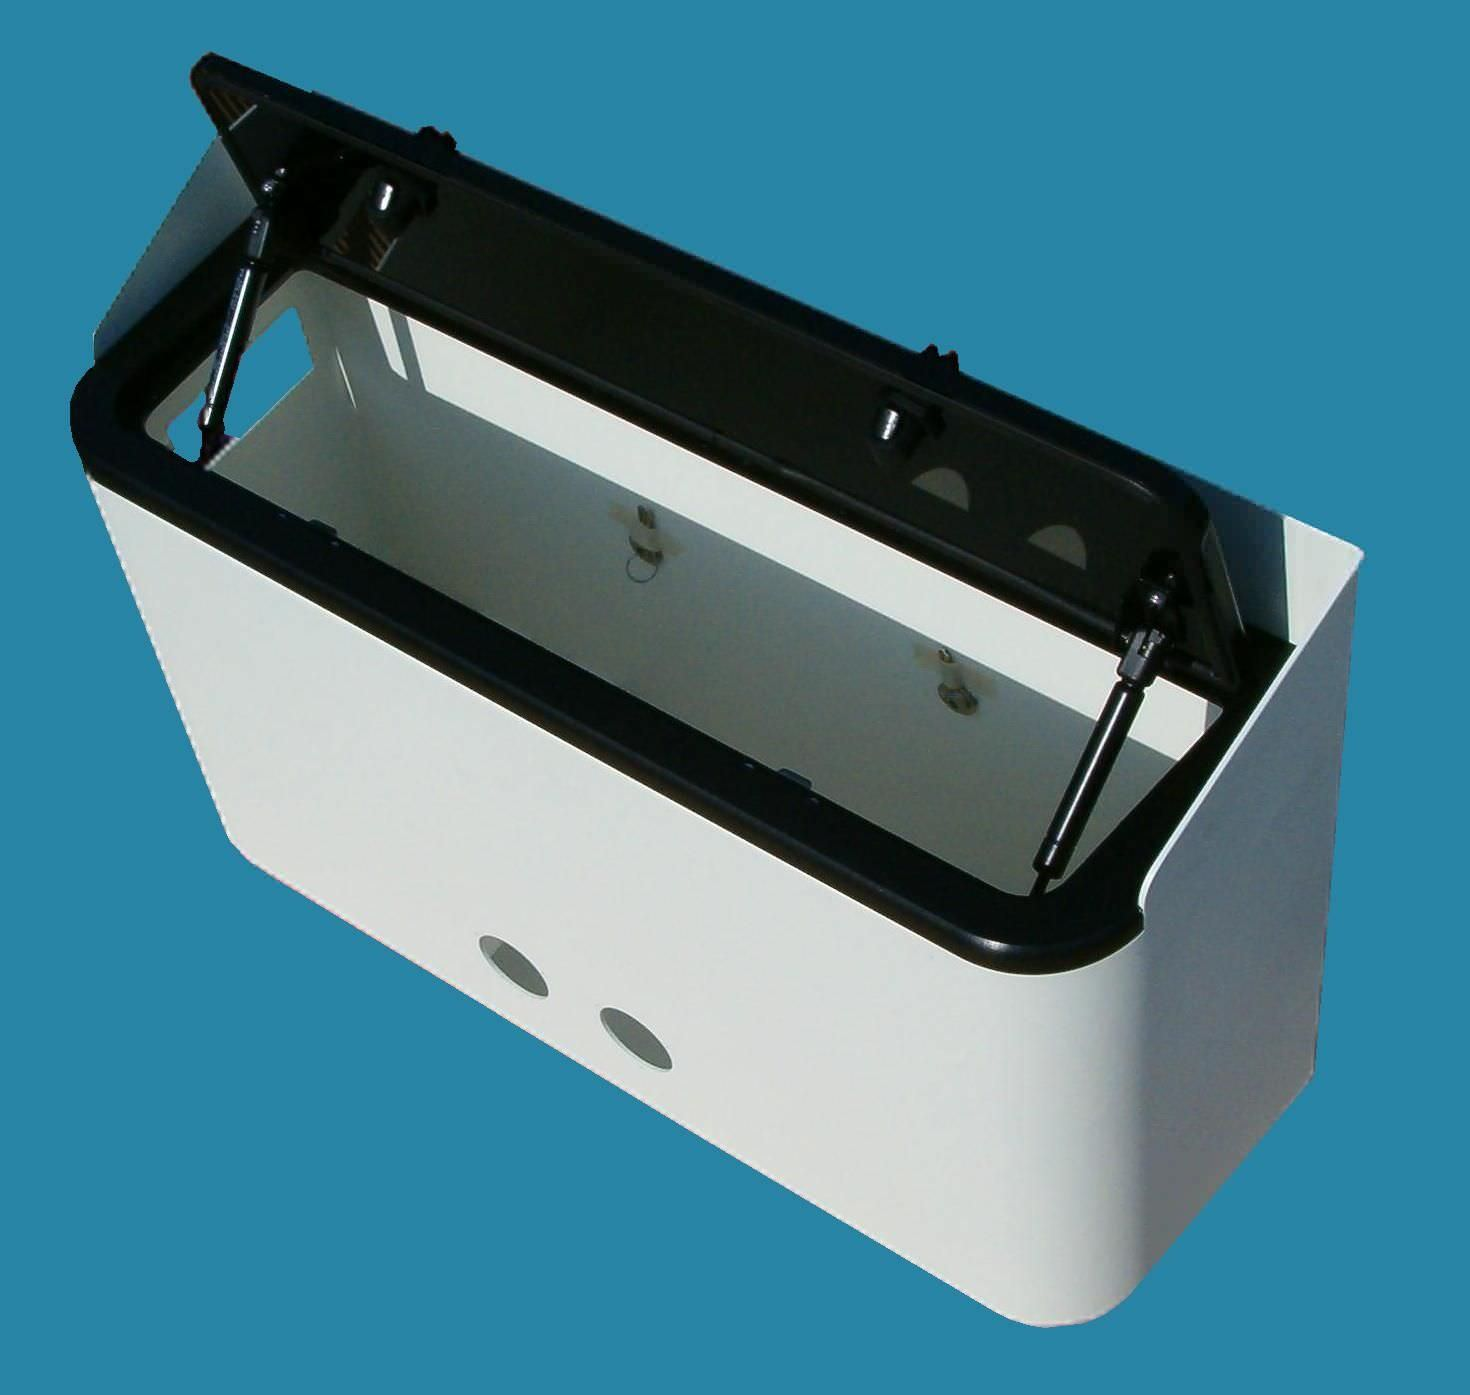 ... T Top Storage Box / For Boats